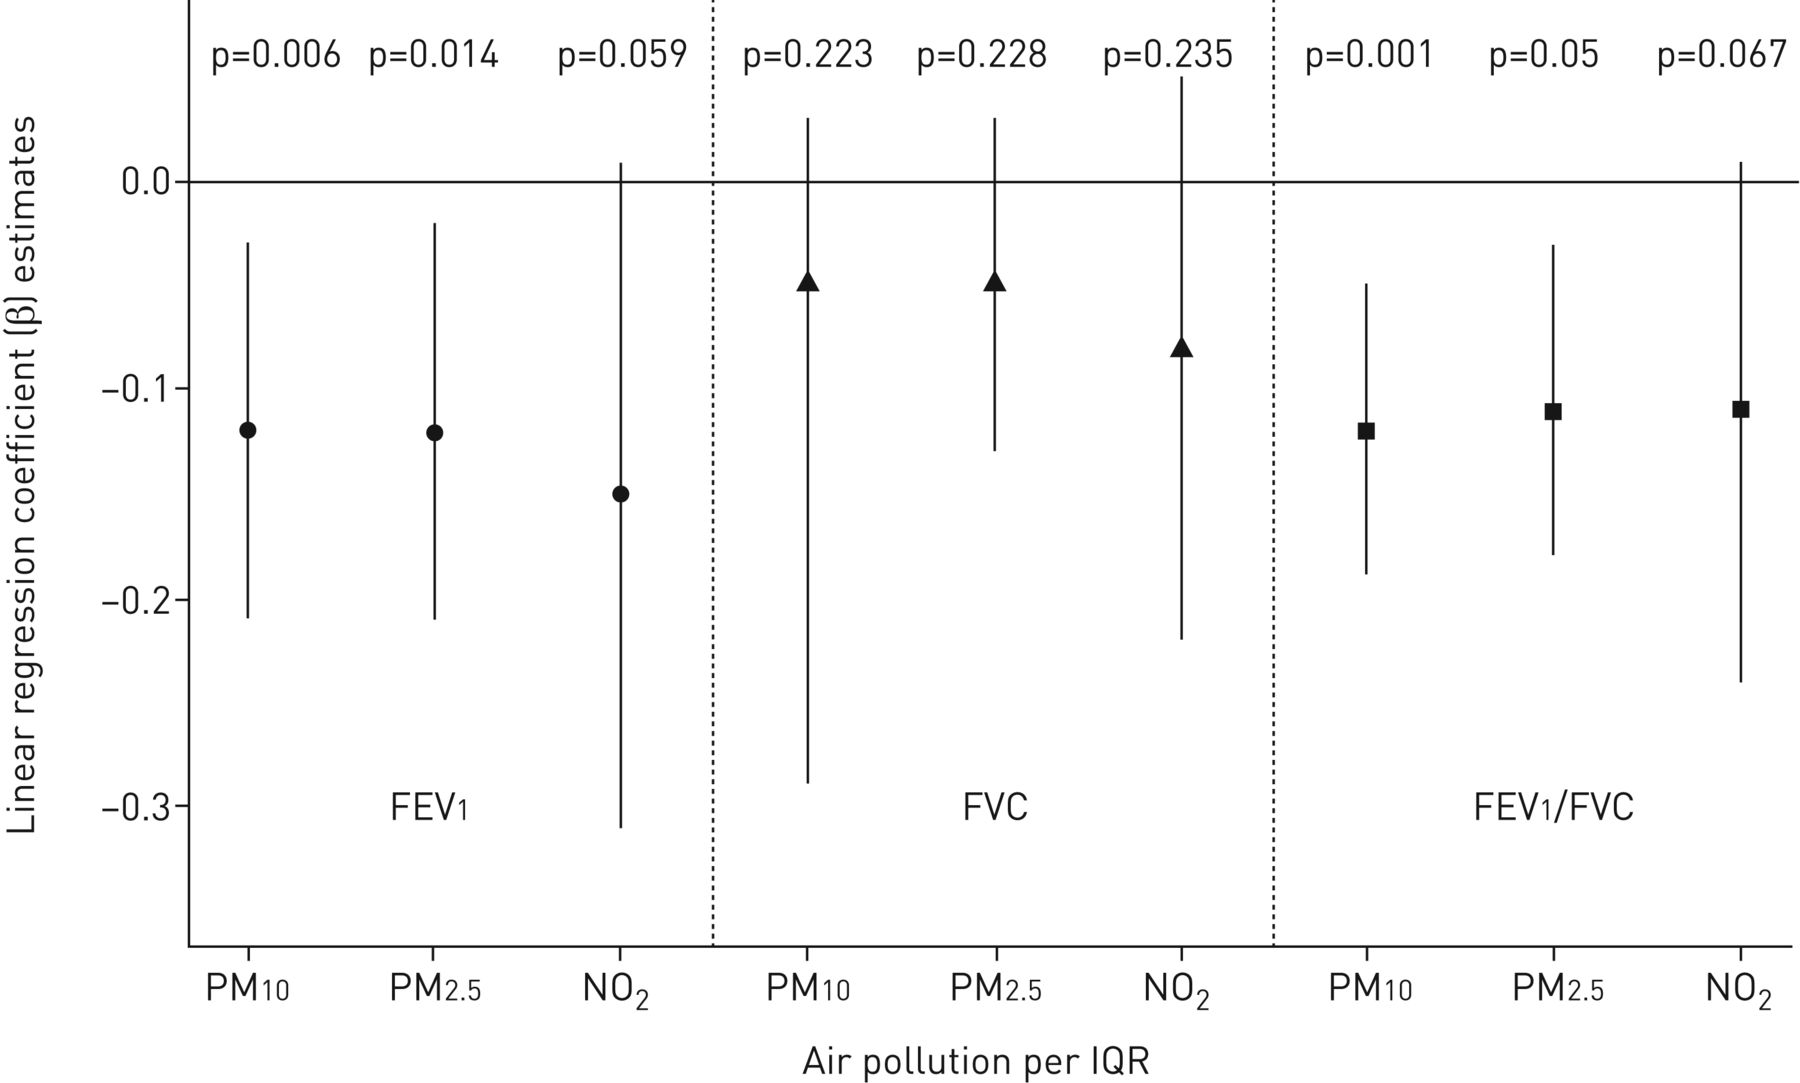 The Role Of Air Pollution And Lung Function In Cognitive Impairment